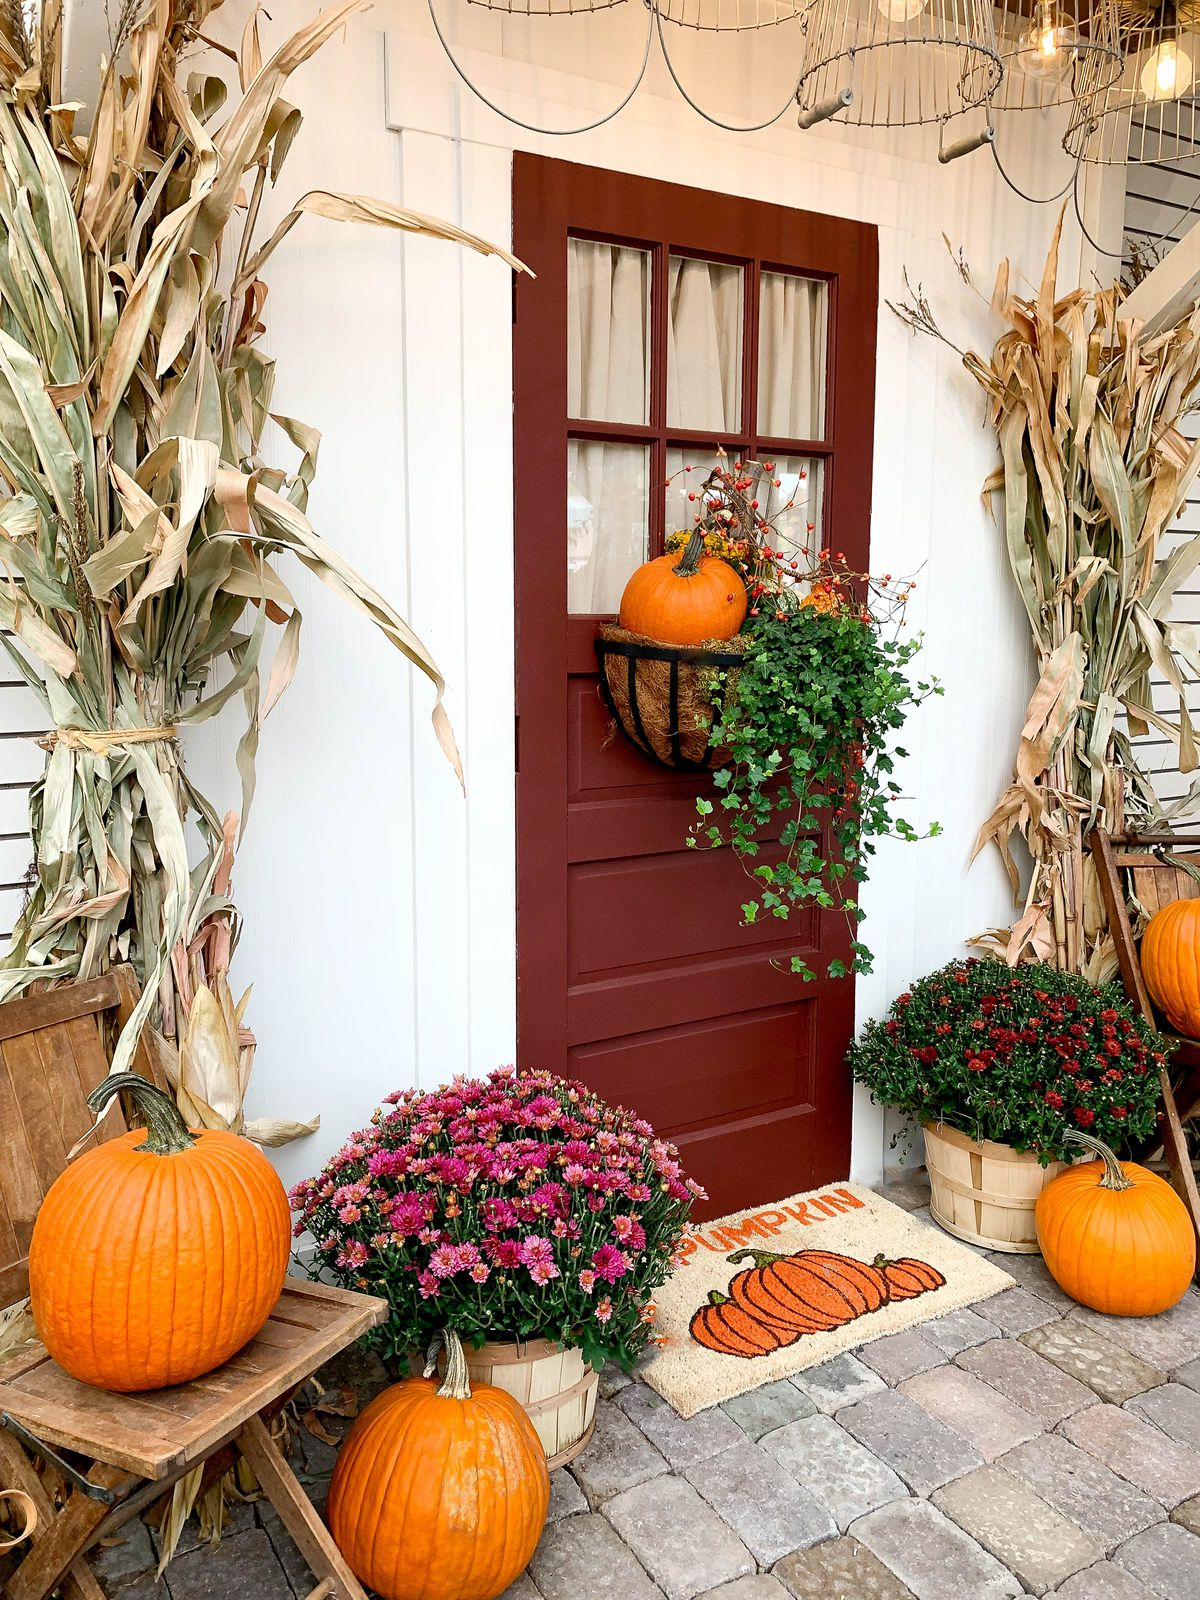 A front door with fall decor including mums in apple crates, pumpkins and dried corn stalks.